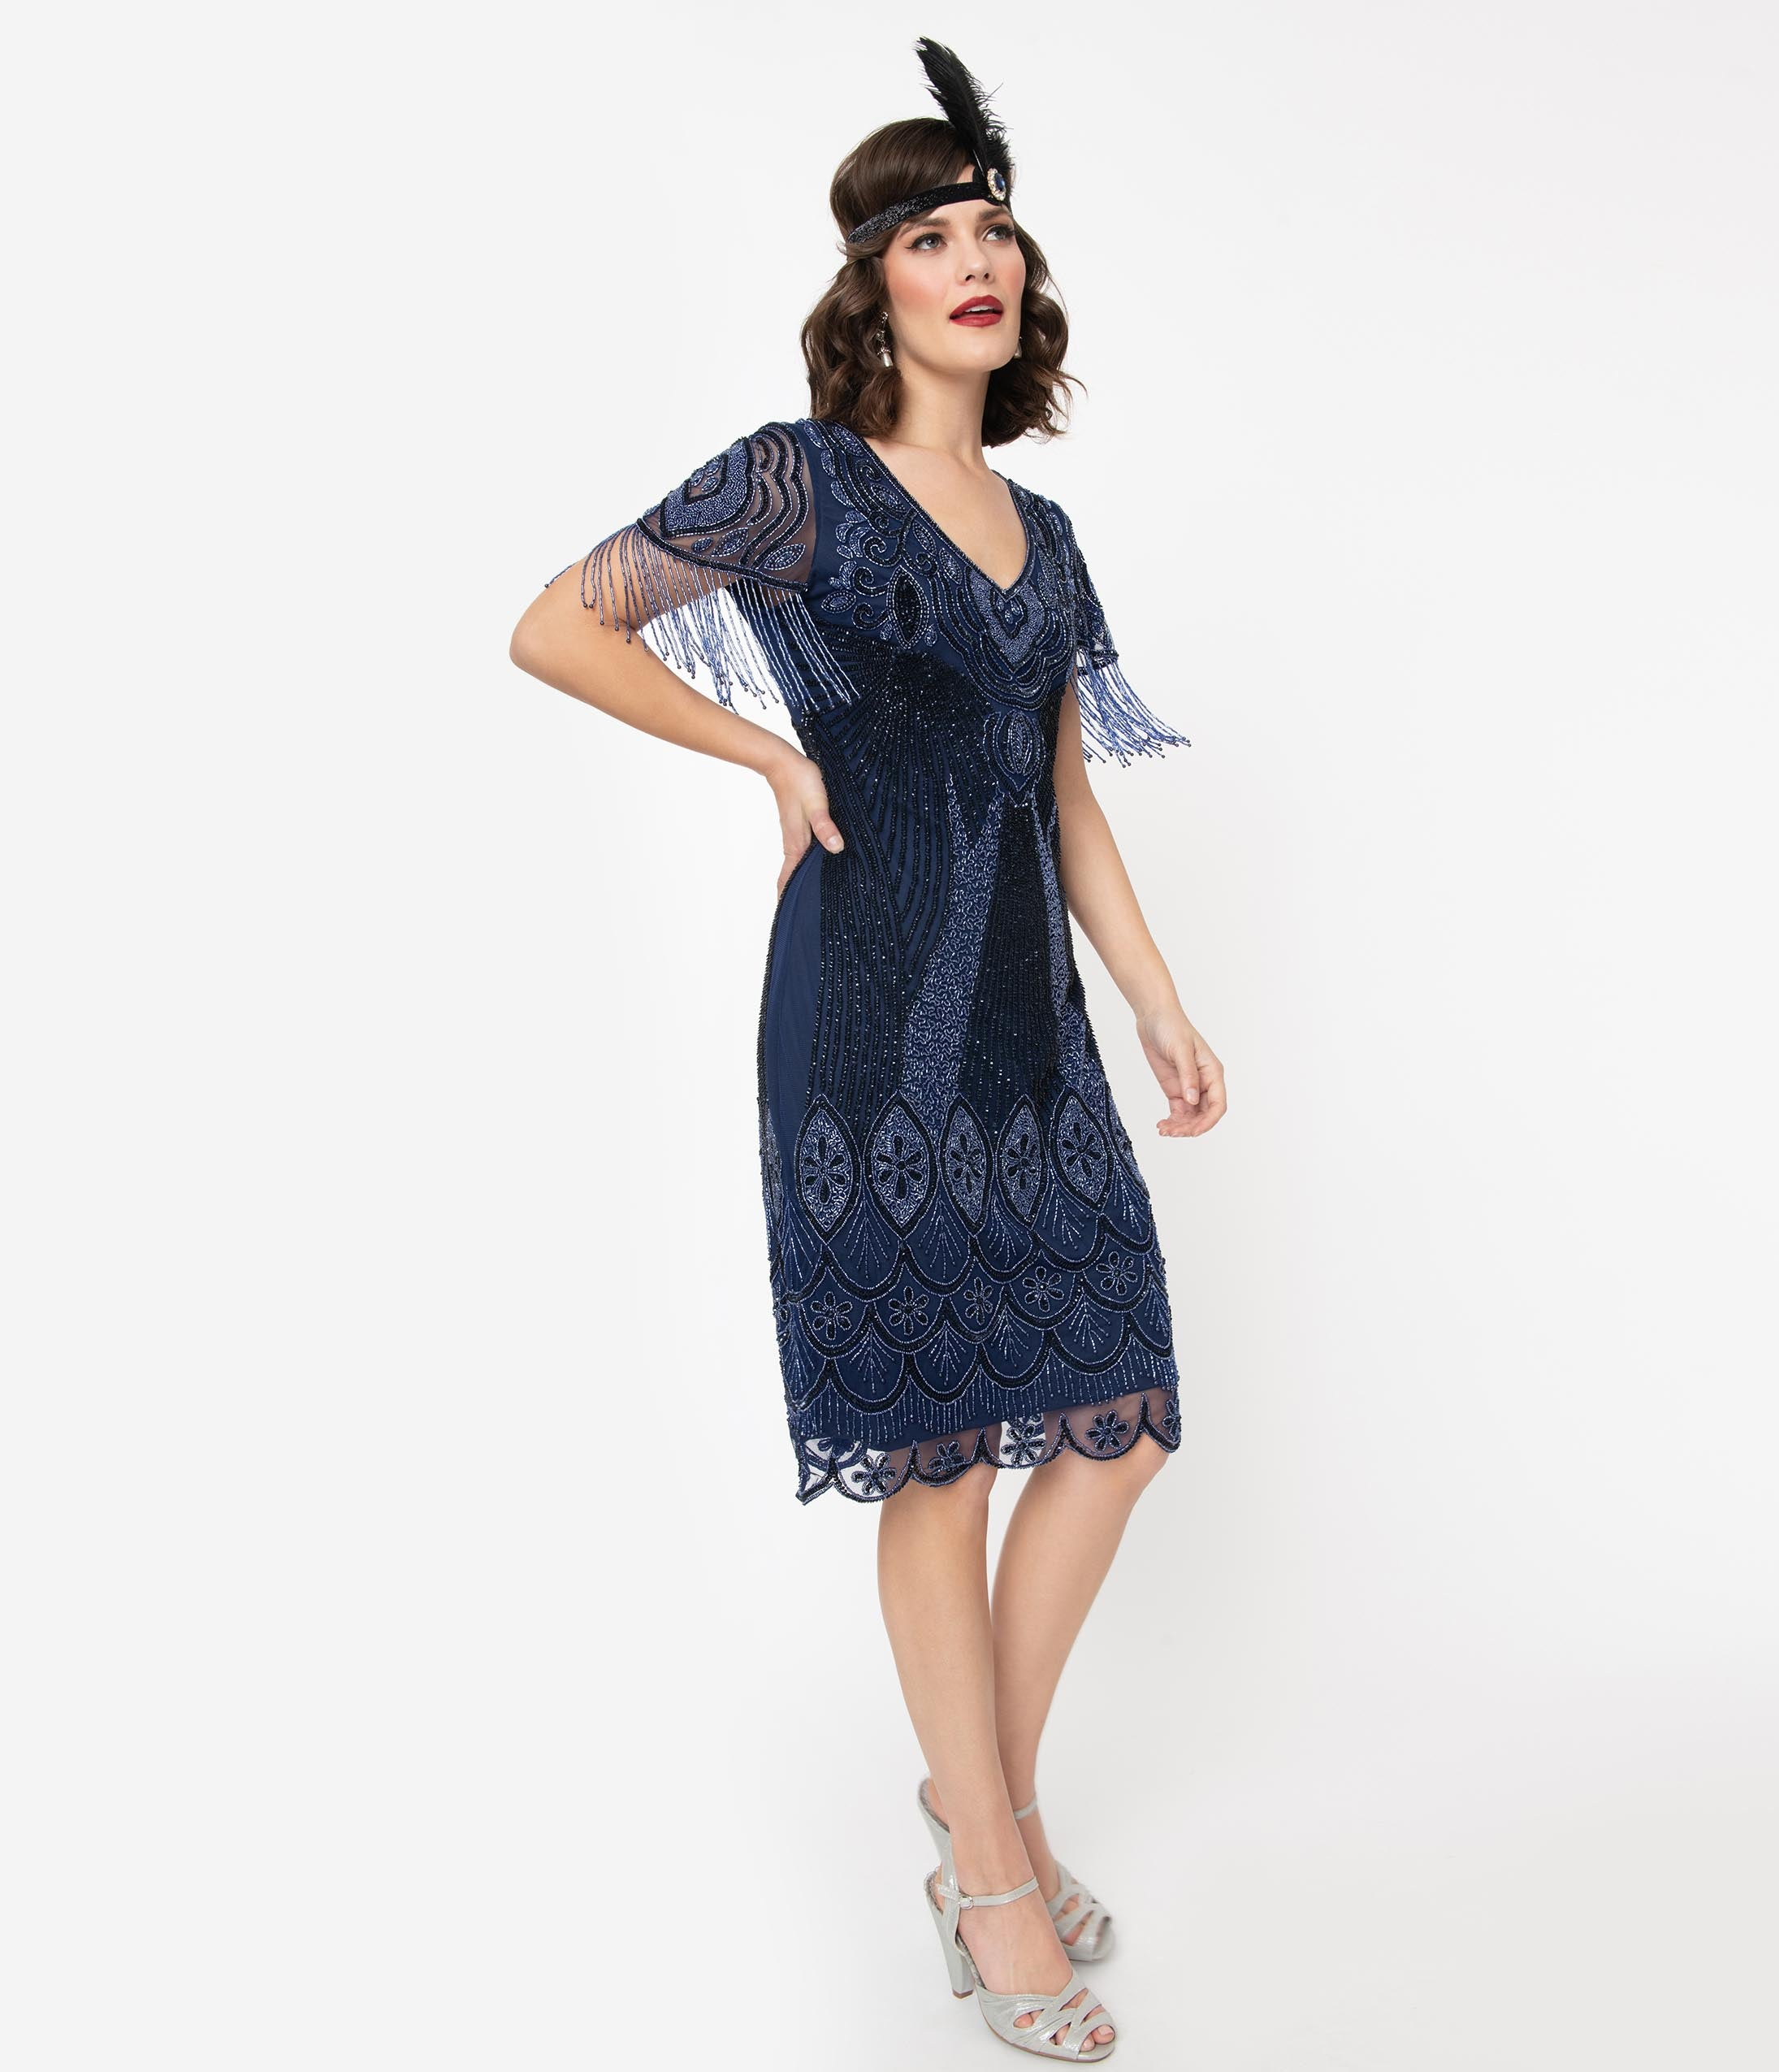 Charleston Dress: Fringe Flapper Dress 1920S Navy Beaded Marta Flapper Dress $158.00 AT vintagedancer.com